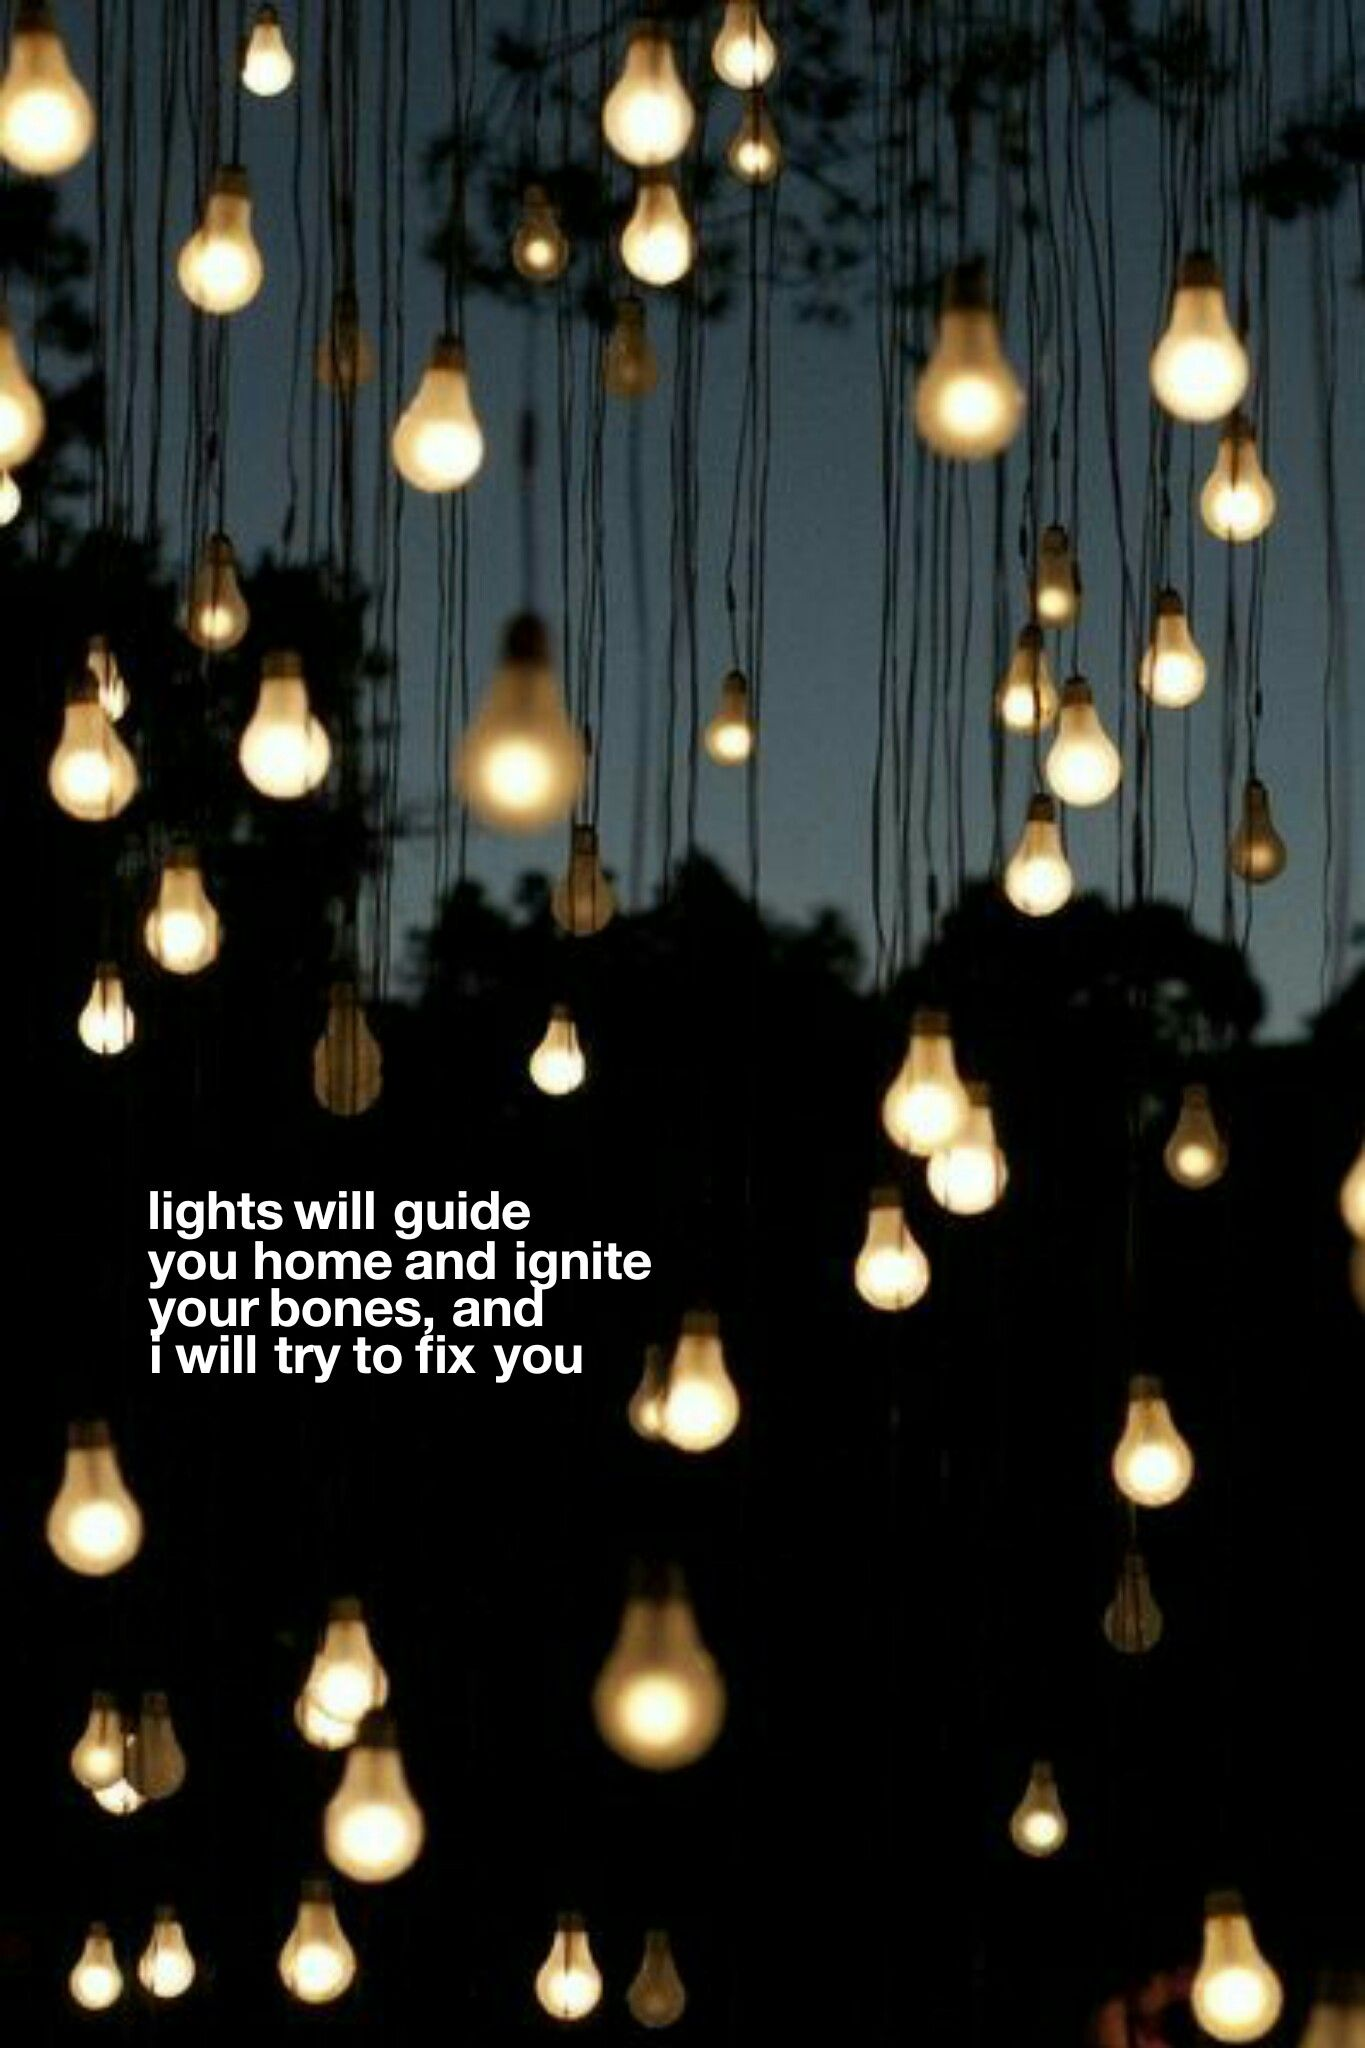 Lyric Wallpaper Coldplay Fix You Light Art Installation Light Art Phone Wallpaper